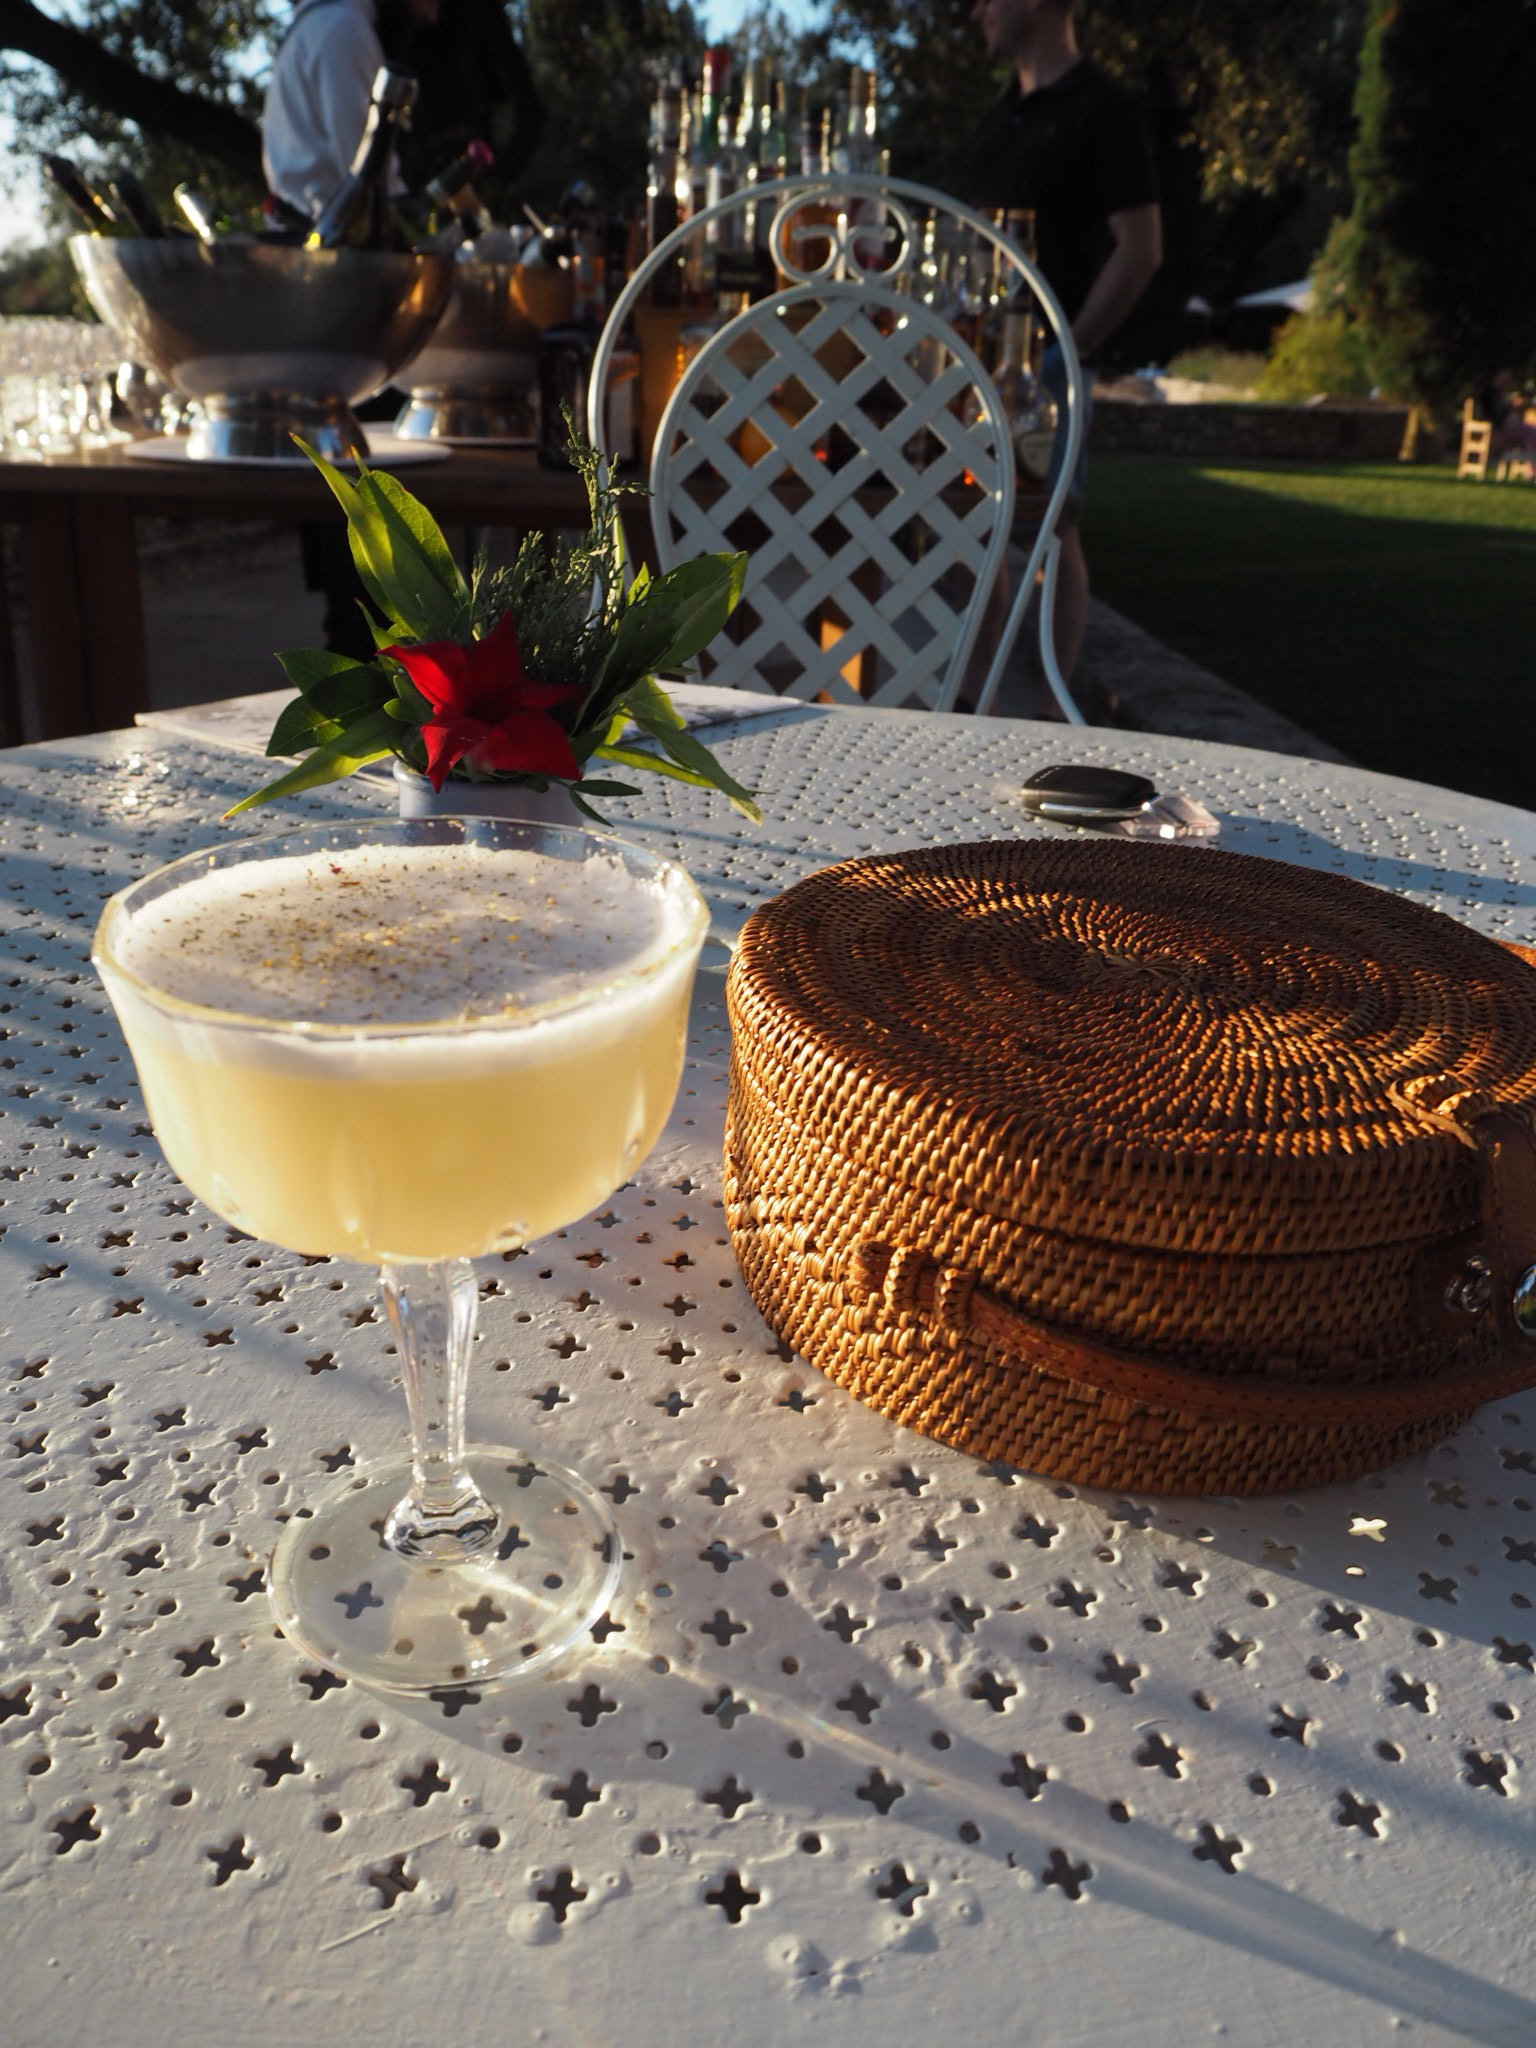 The Mediteranneo cocktail